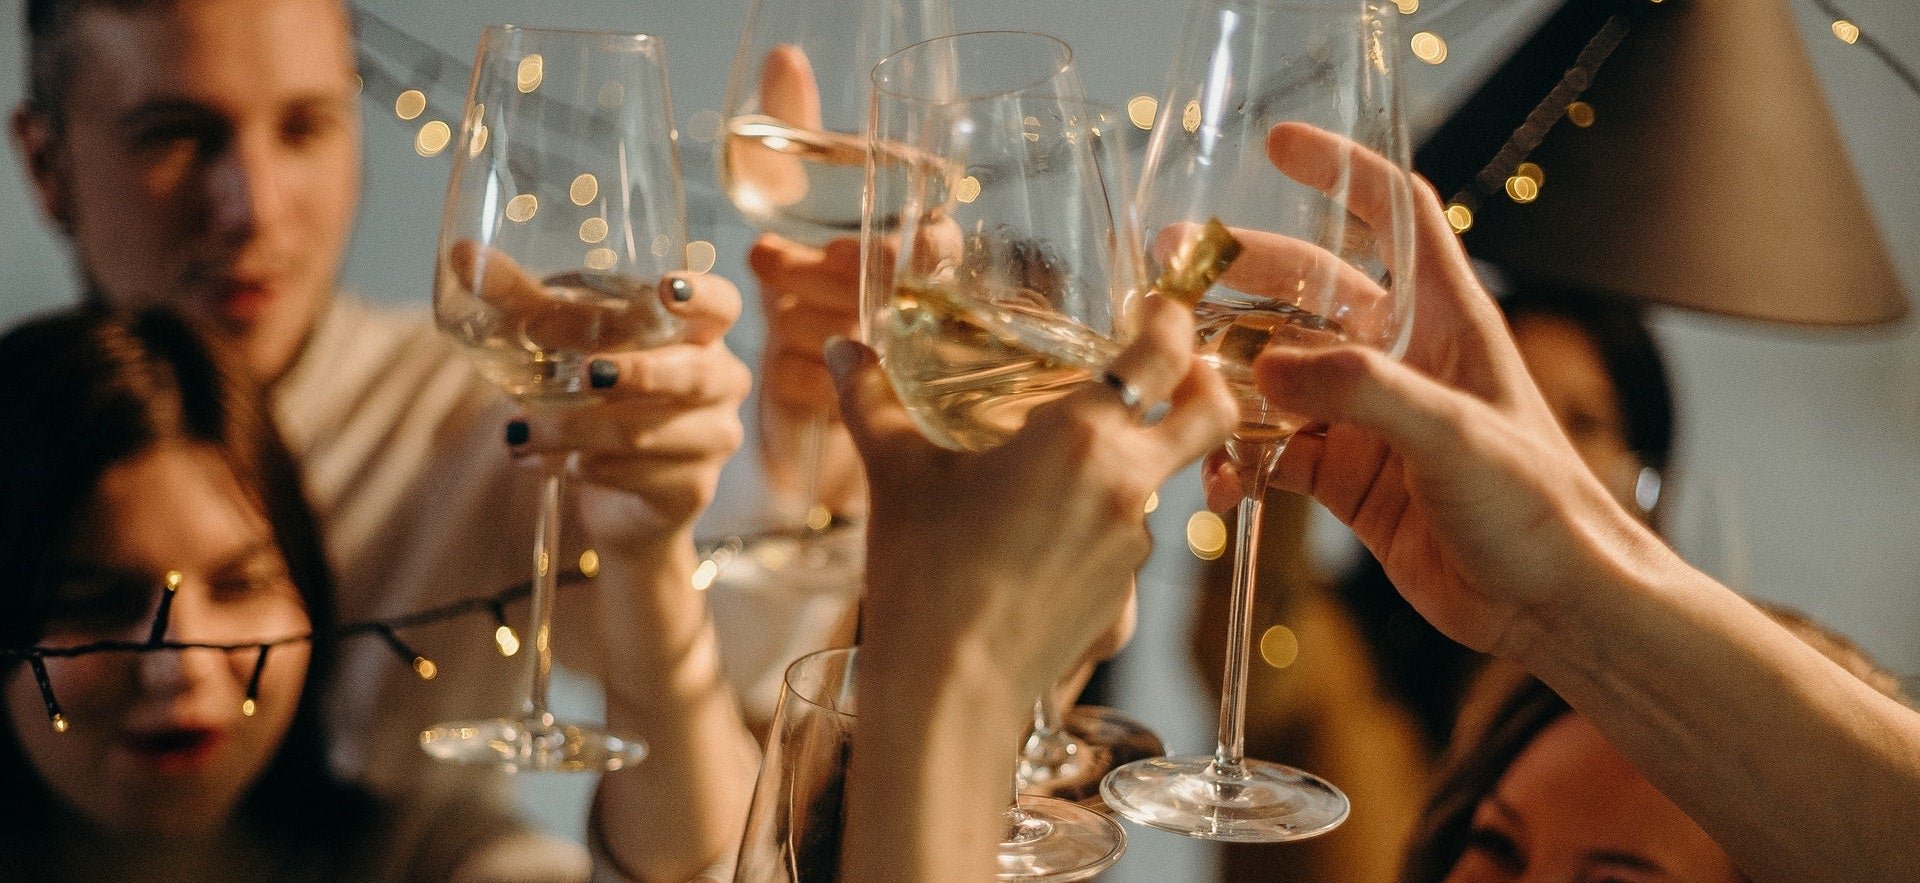 A group of friends toast with glasses of white wine